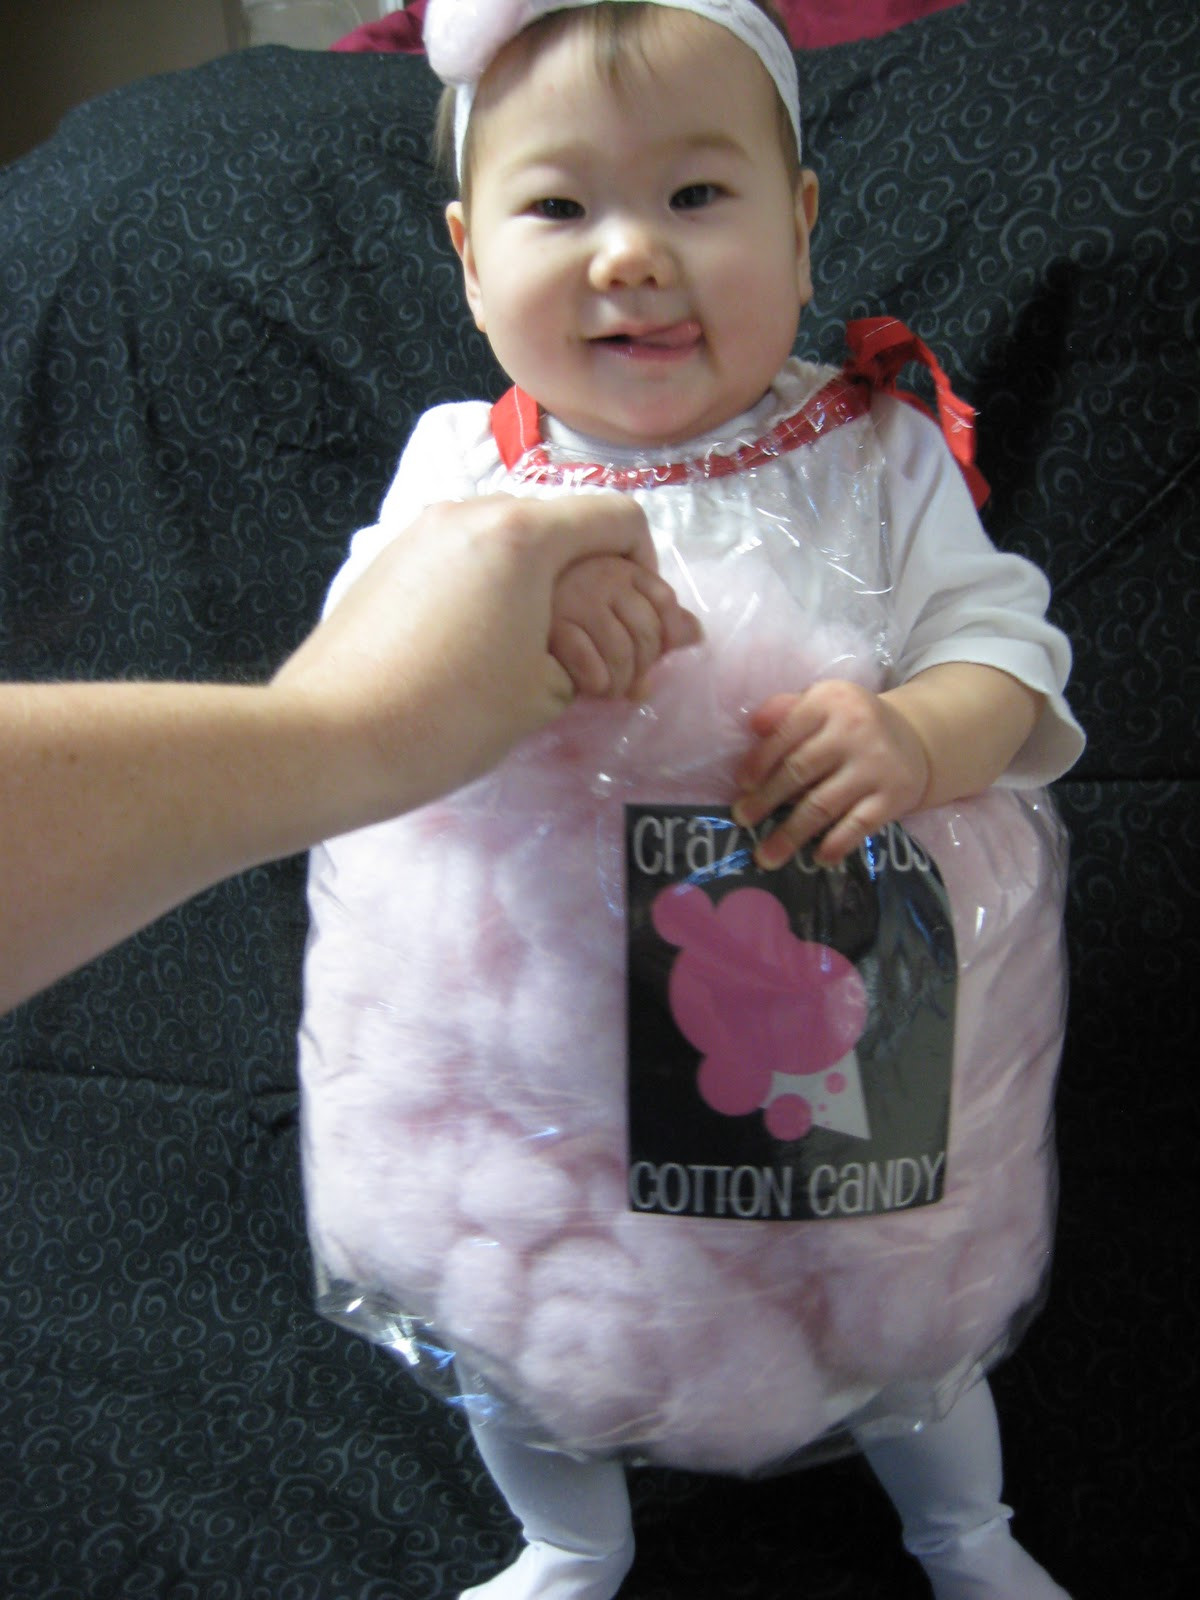 Best ideas about DIY Halloween Costumes Kids . Save or Pin SweeterThanSweets Cutest Handmade DIY Kids Halloween Now.